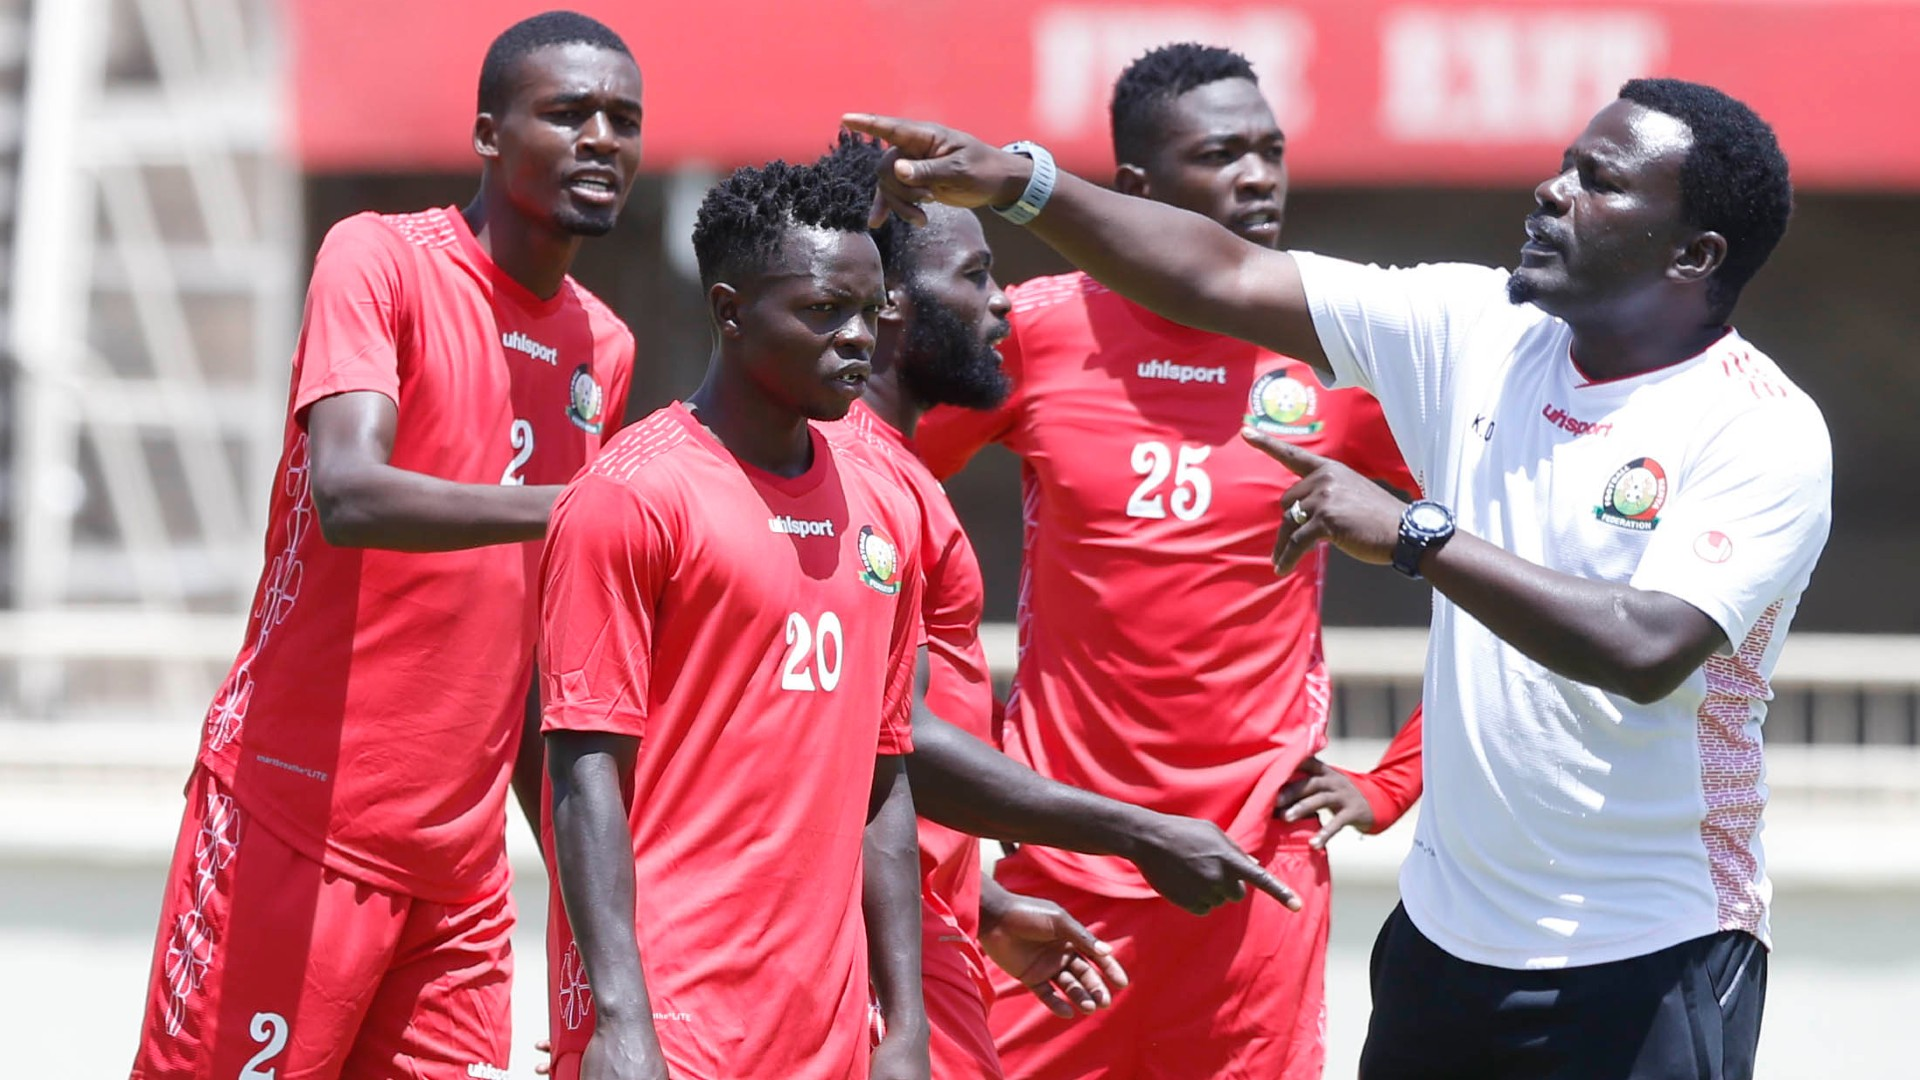 Mulee explains why Kenya settled for South Sudan as pre-Afcon friendly opponents